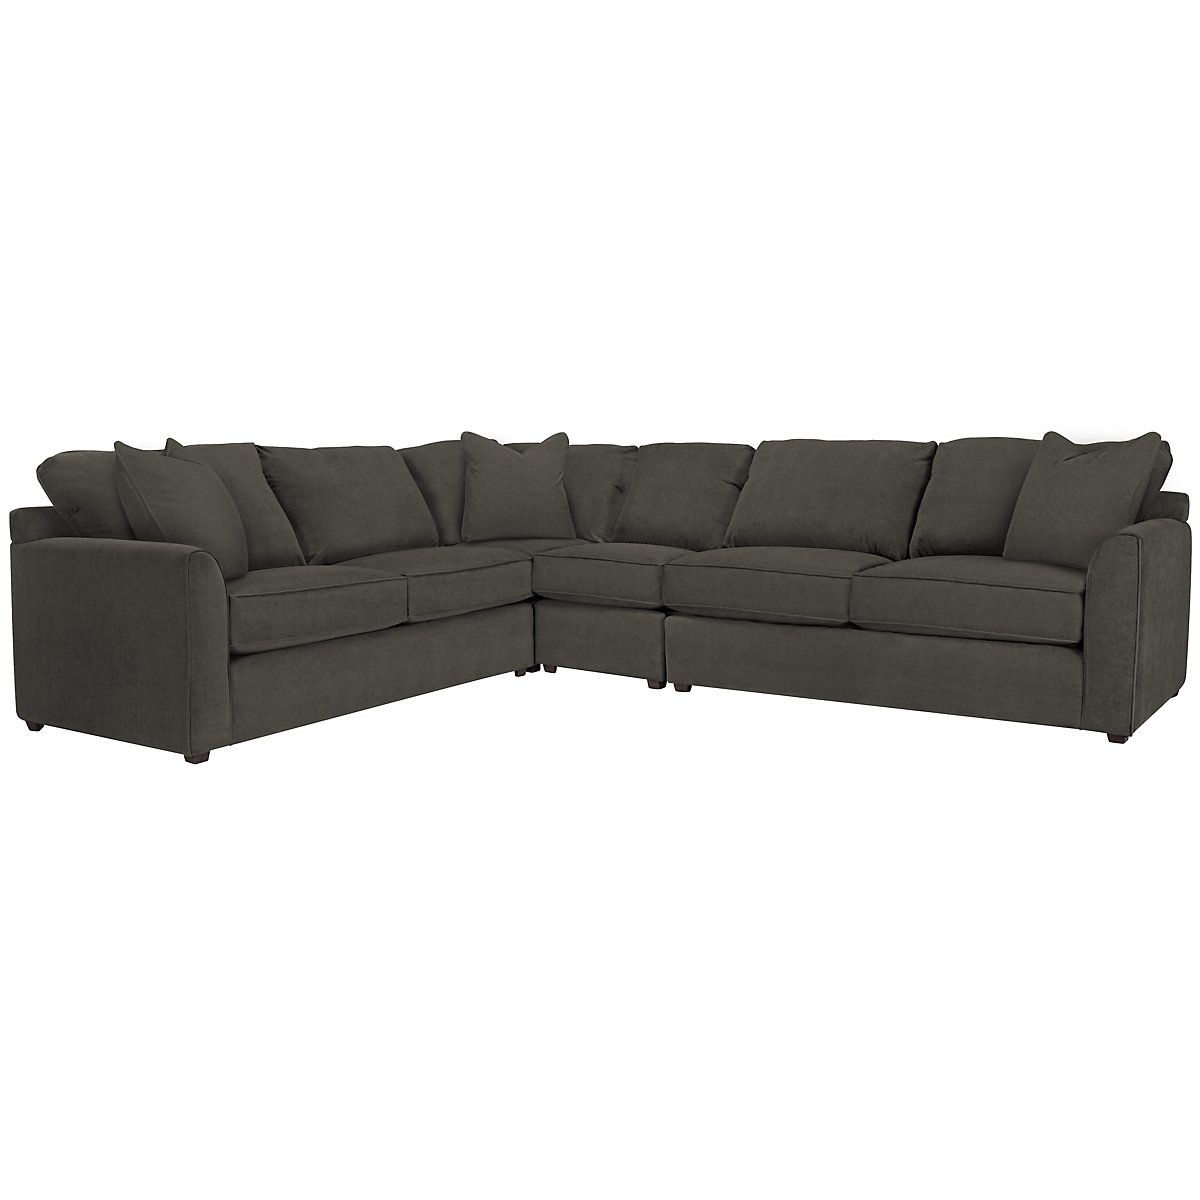 Express3 Dark Gray Microfiber Large Two-Arm Sectional